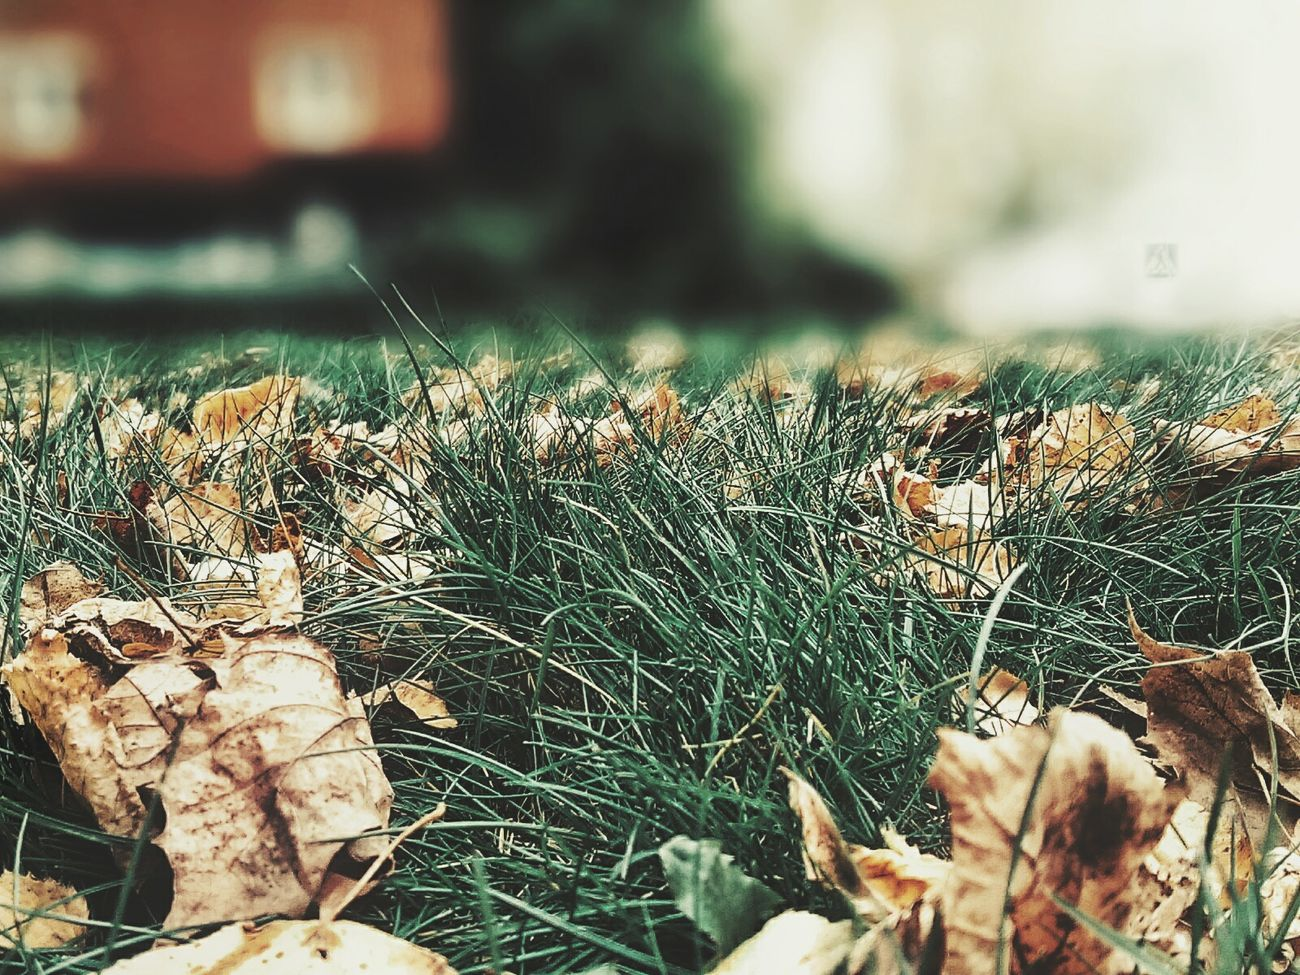 Close-up Growth Plant Nature No People Day Outdoors Horizontal Autumn Atumn Colors